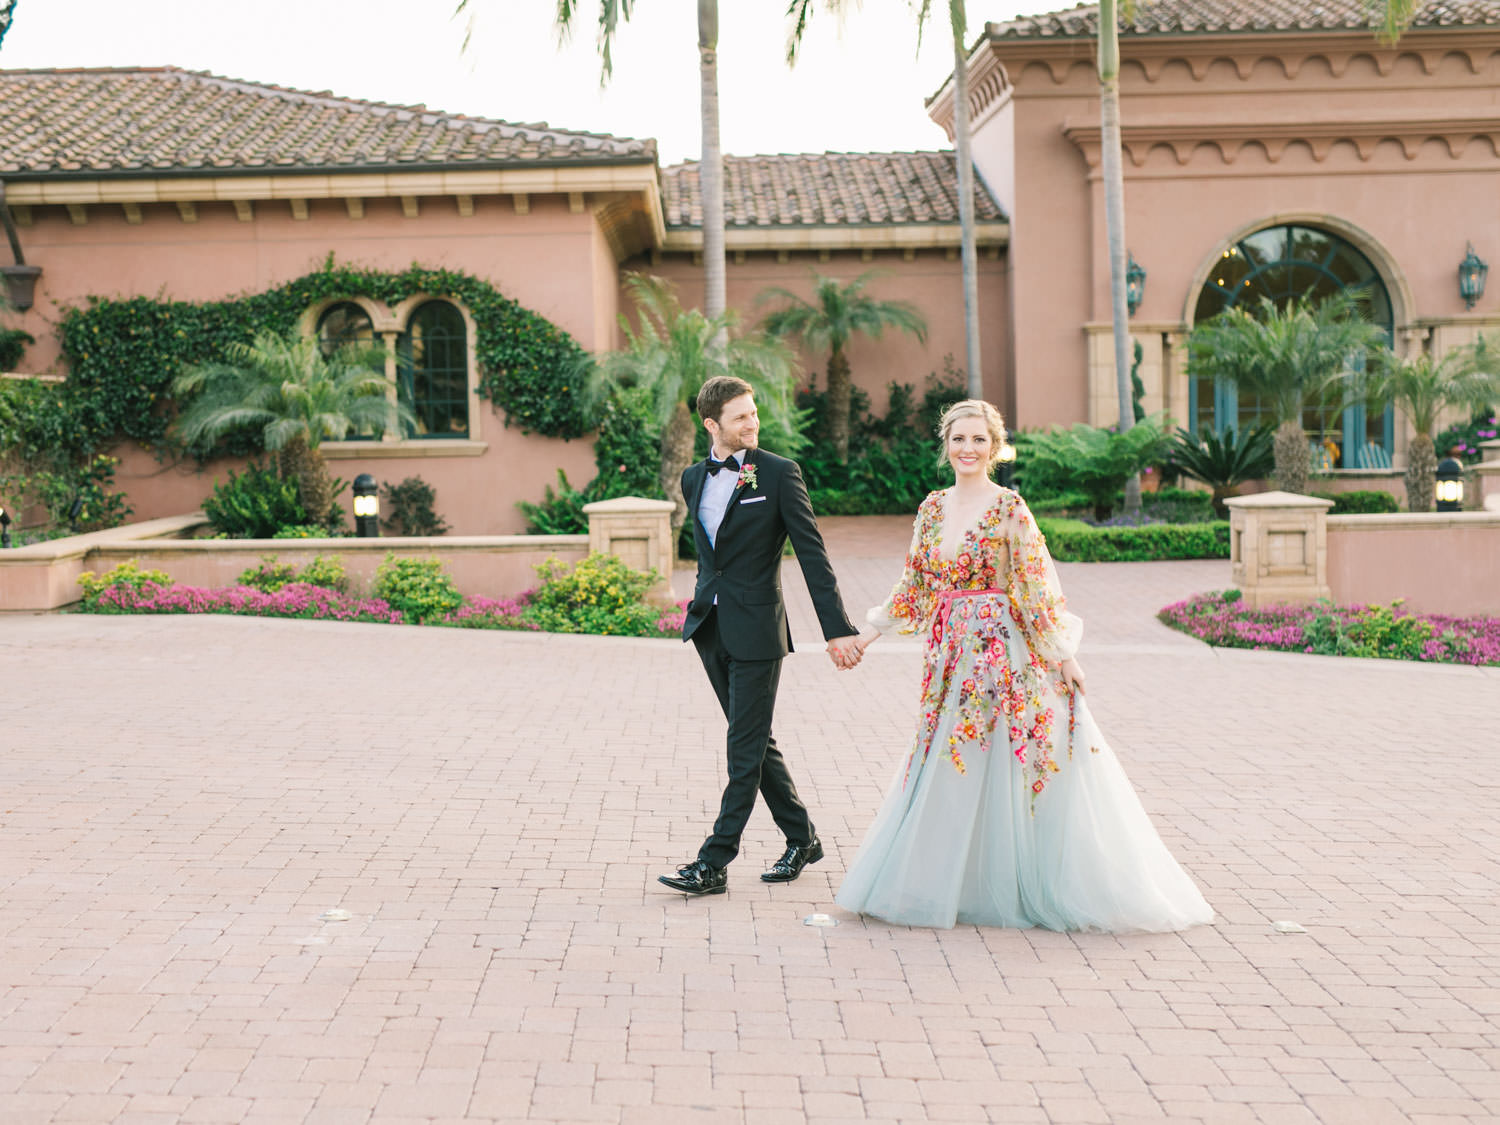 Bride and groom sunset portraits. Bride wearing colorful Marchesa wedding gown with blue, pink, yellow, green, and orange floral appliques. A Wedding Photographer's Fairmont Grand Del Mar Wedding